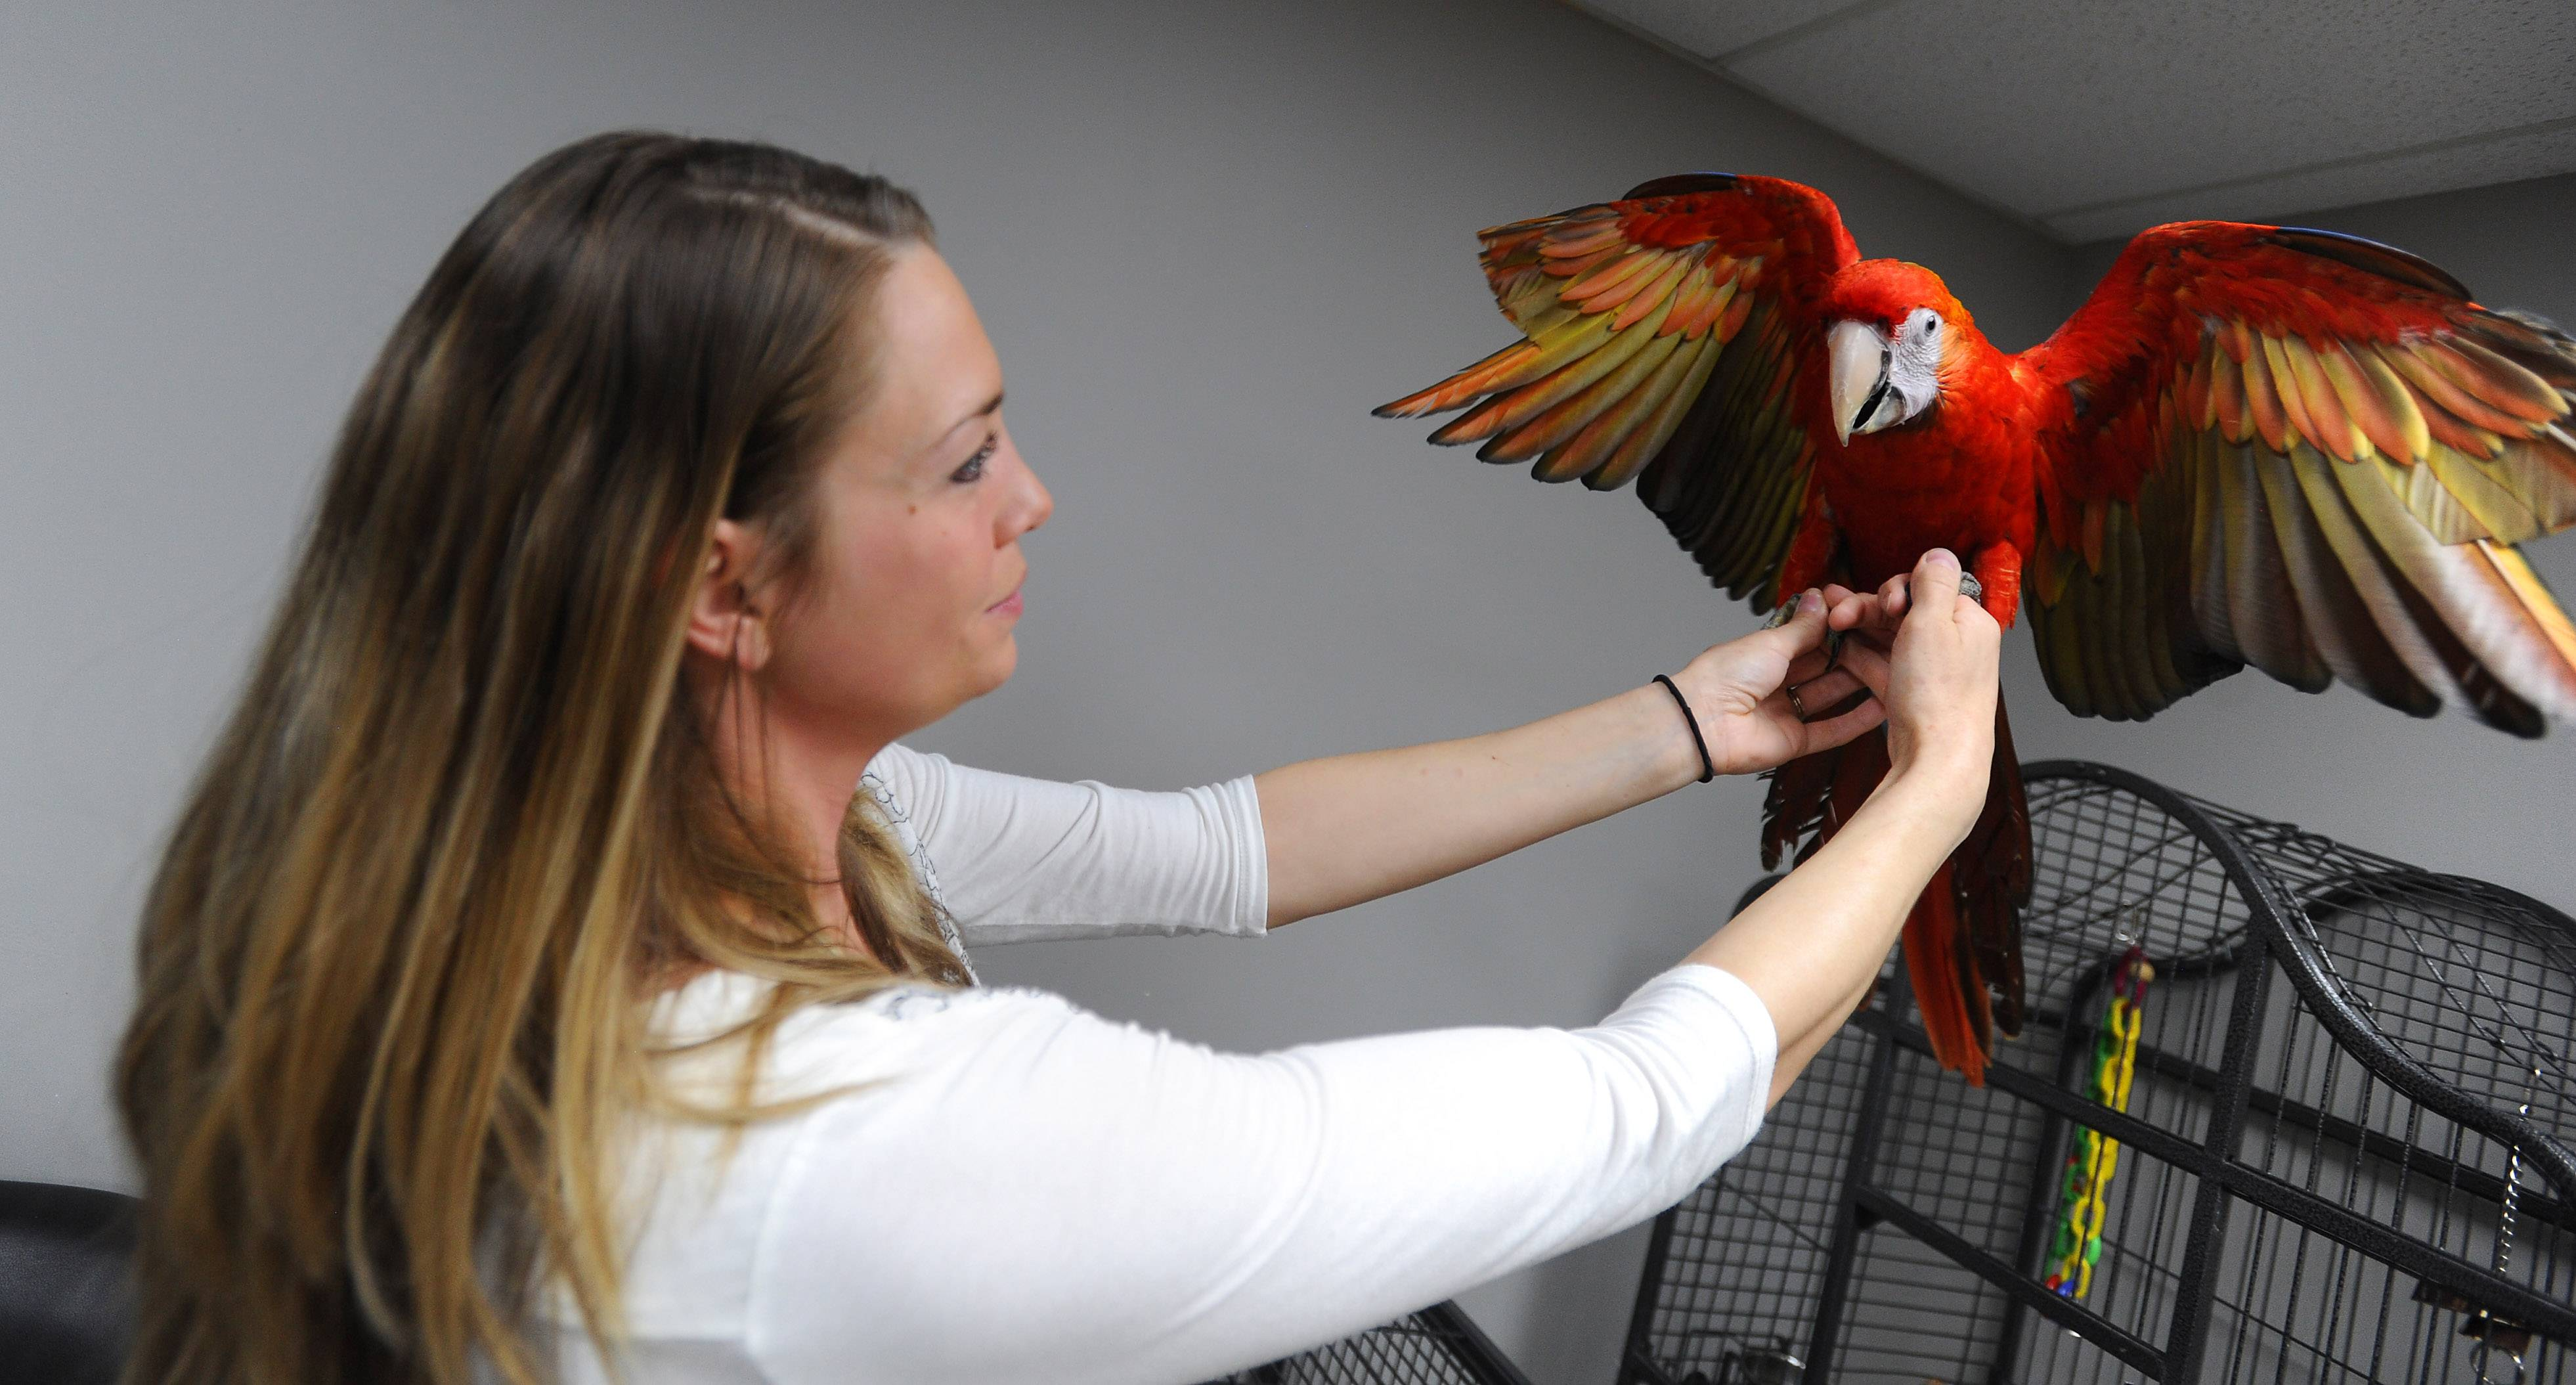 Parrots are, naturally, among the highlights at Parrot Stars, an exotic bird/avian specialty store now open in downtown Arlington Heights. Alexis Highland is the store manager.